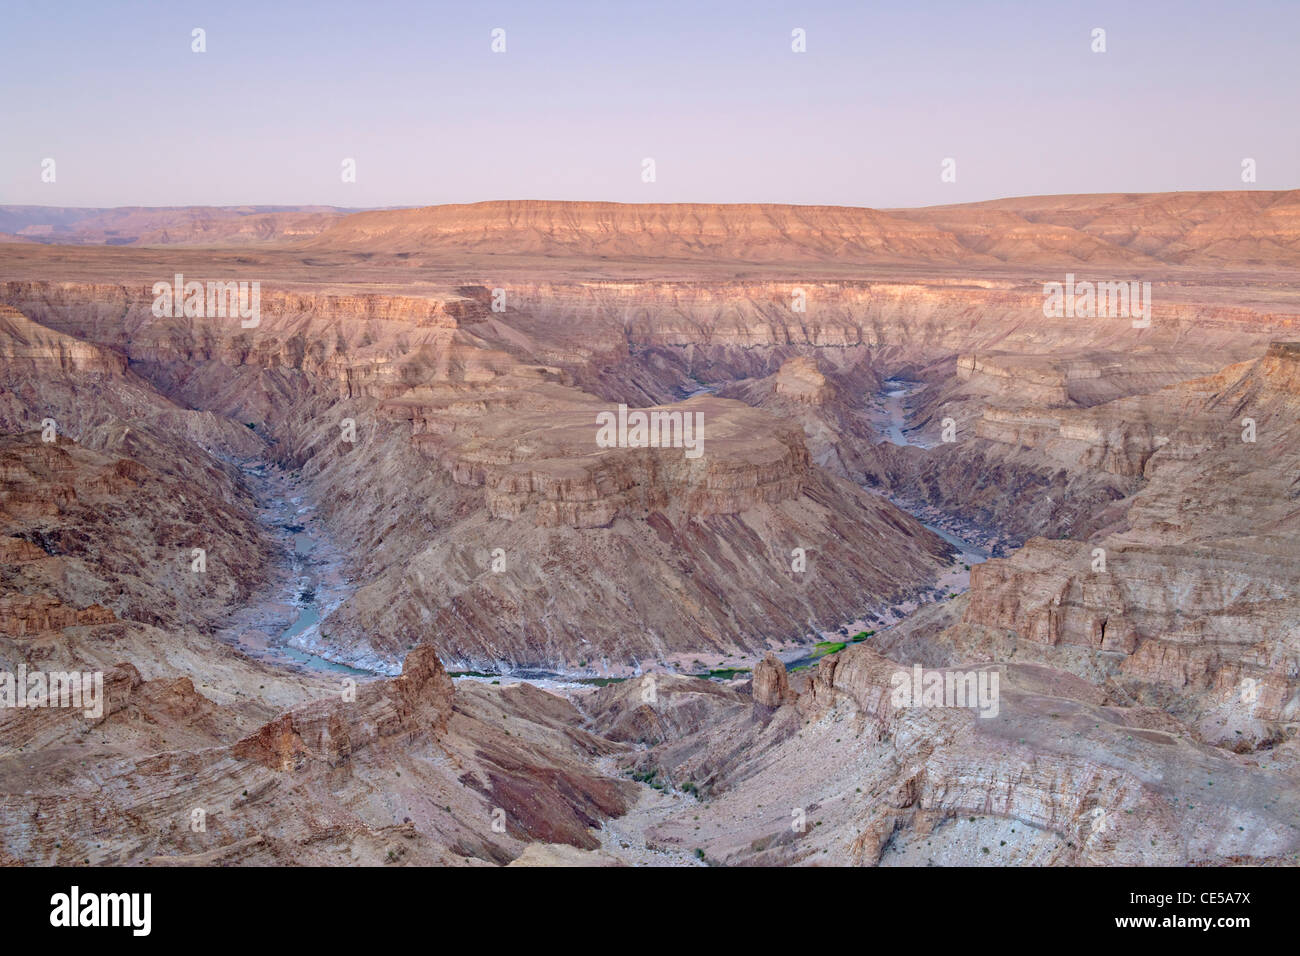 Fish River Canyon dans le sud de la Namibie à l'aube. Photo Stock